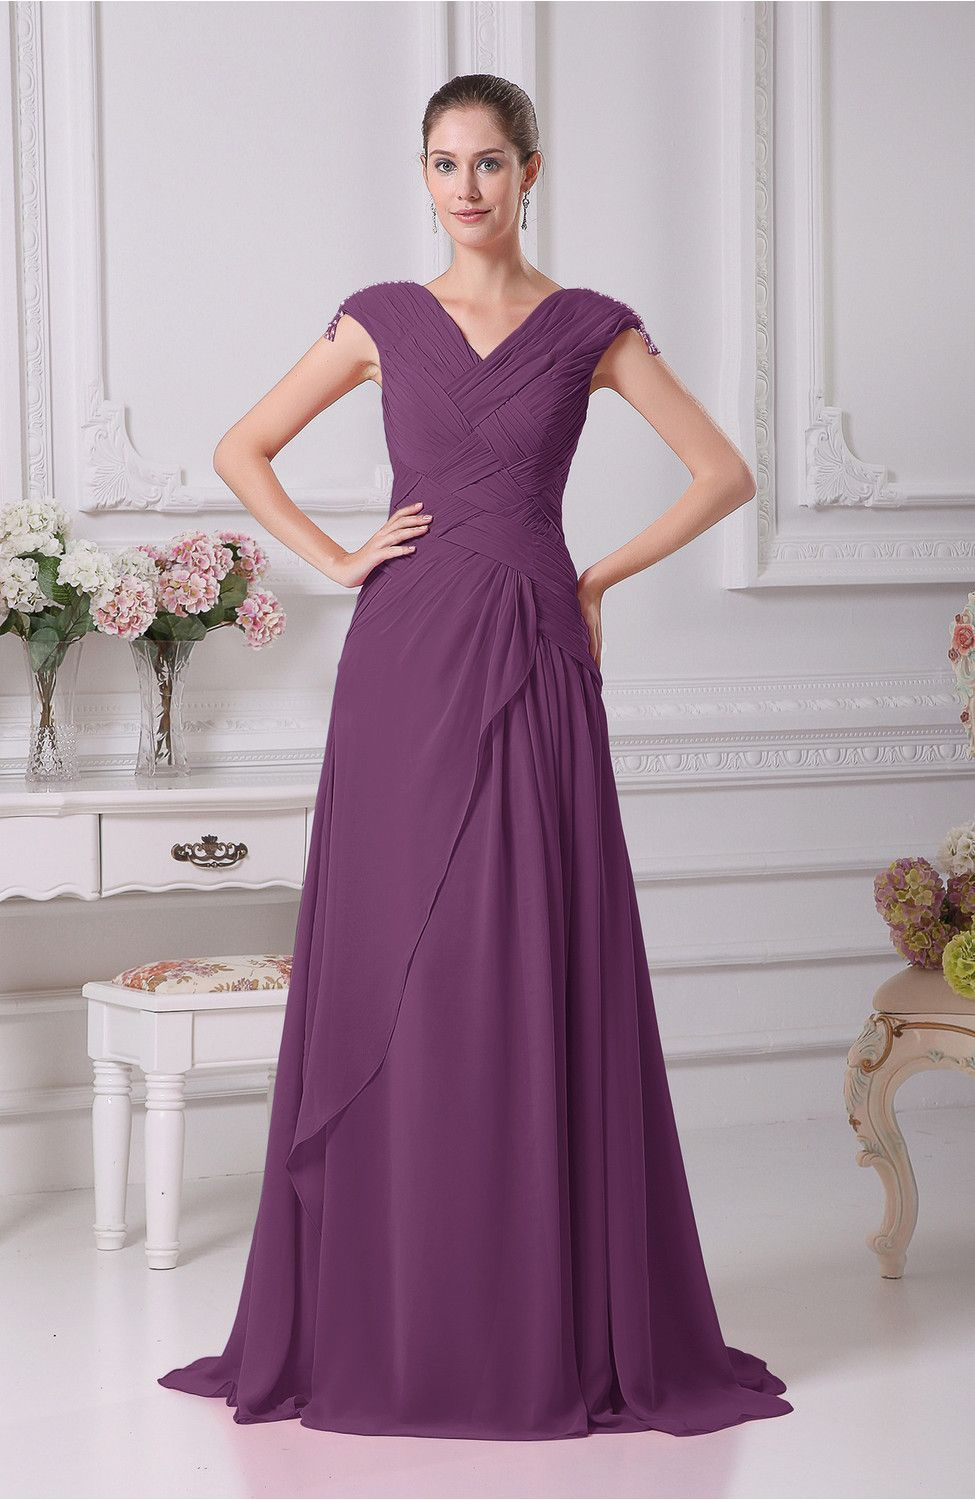 e3b98deab81 Raspberry Prom Dress - Elegant A-line V-neck Short Sleeve Chiffon Floor  Length